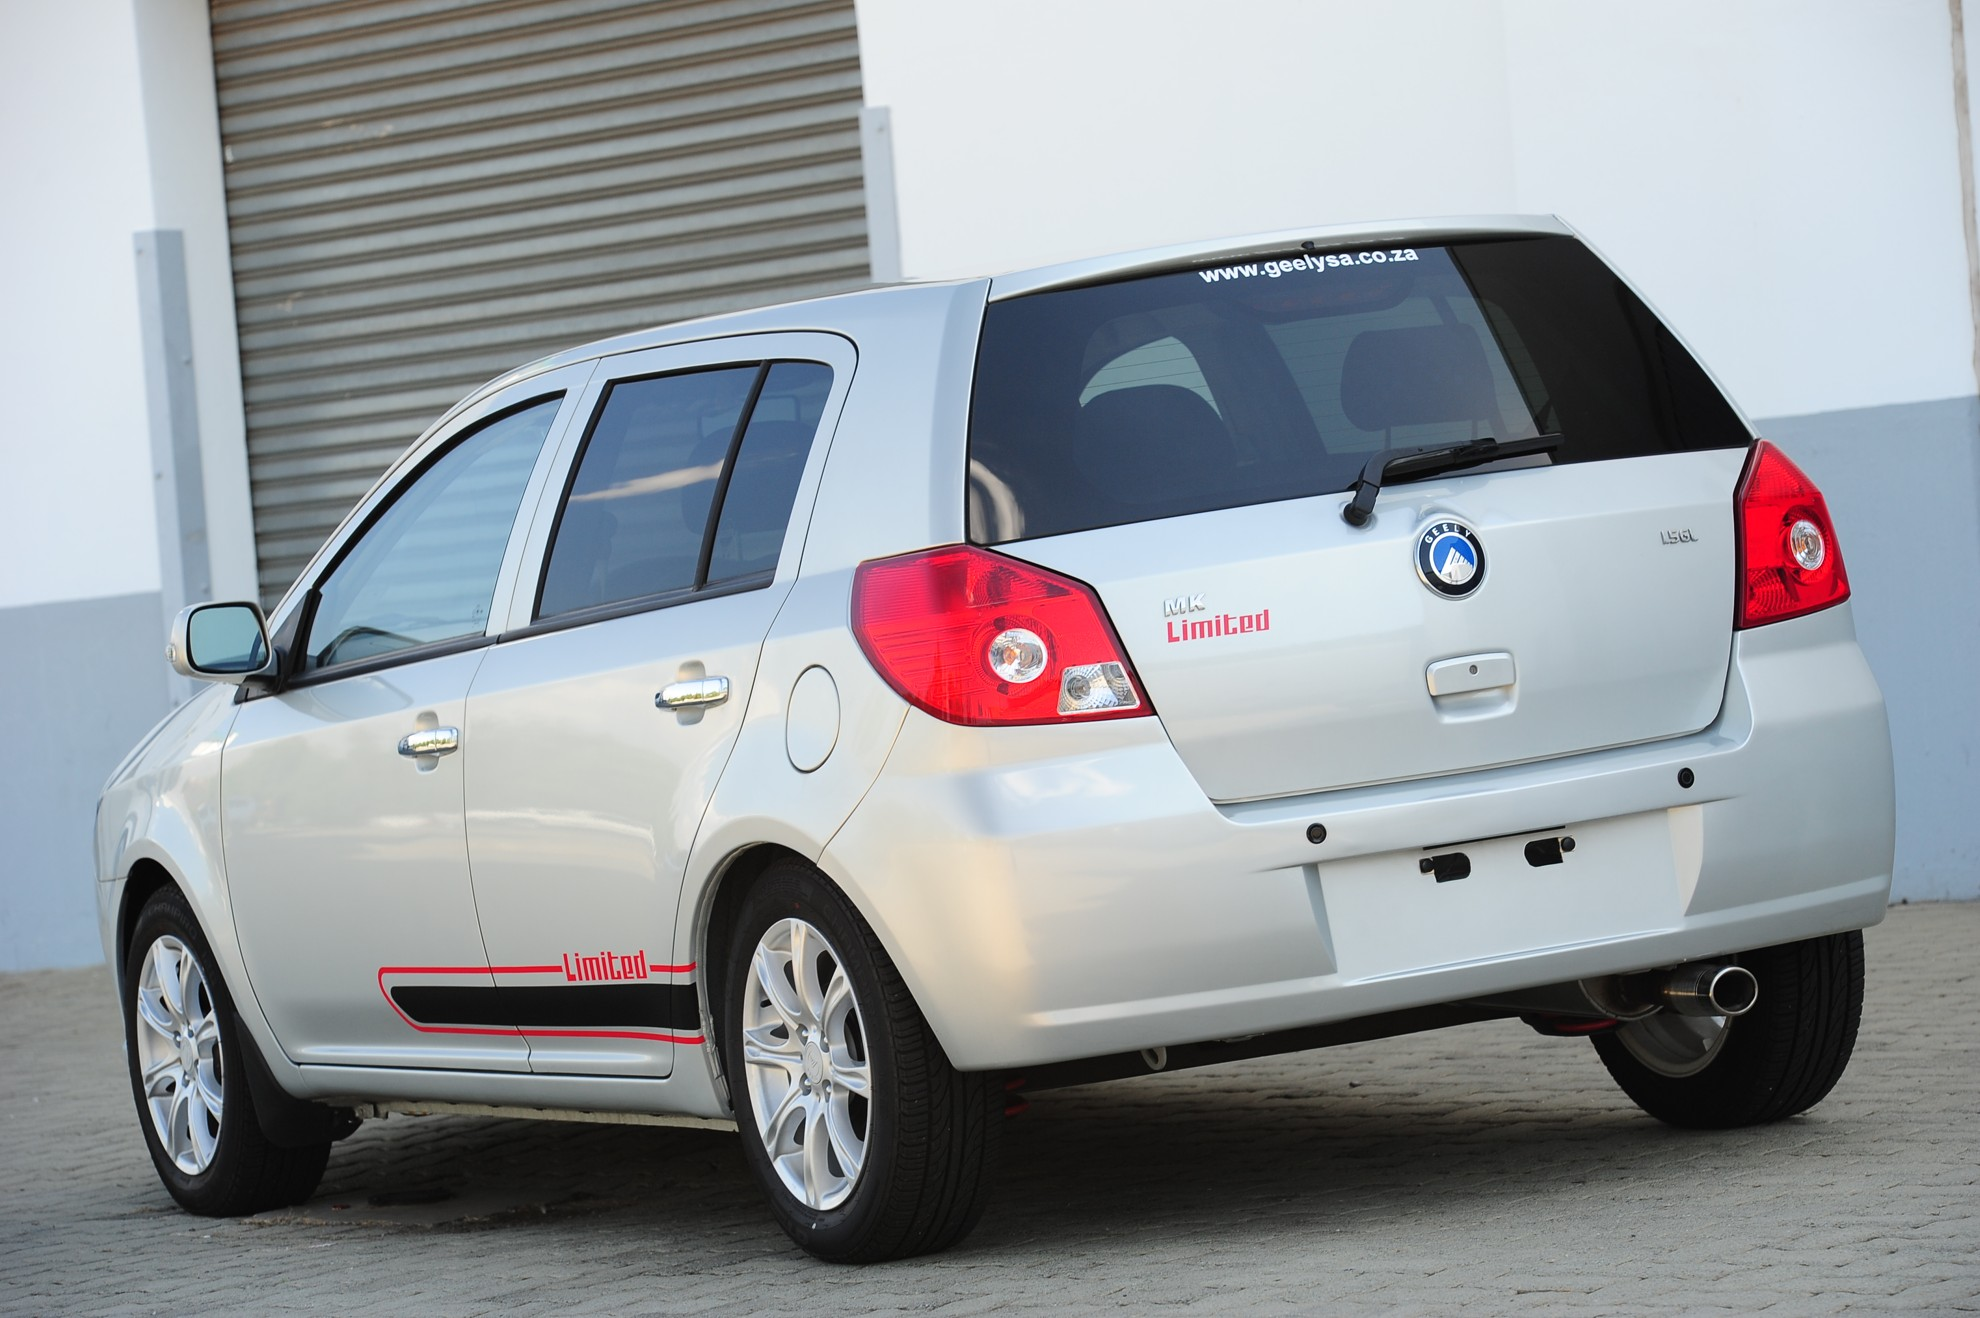 Geely South Africa